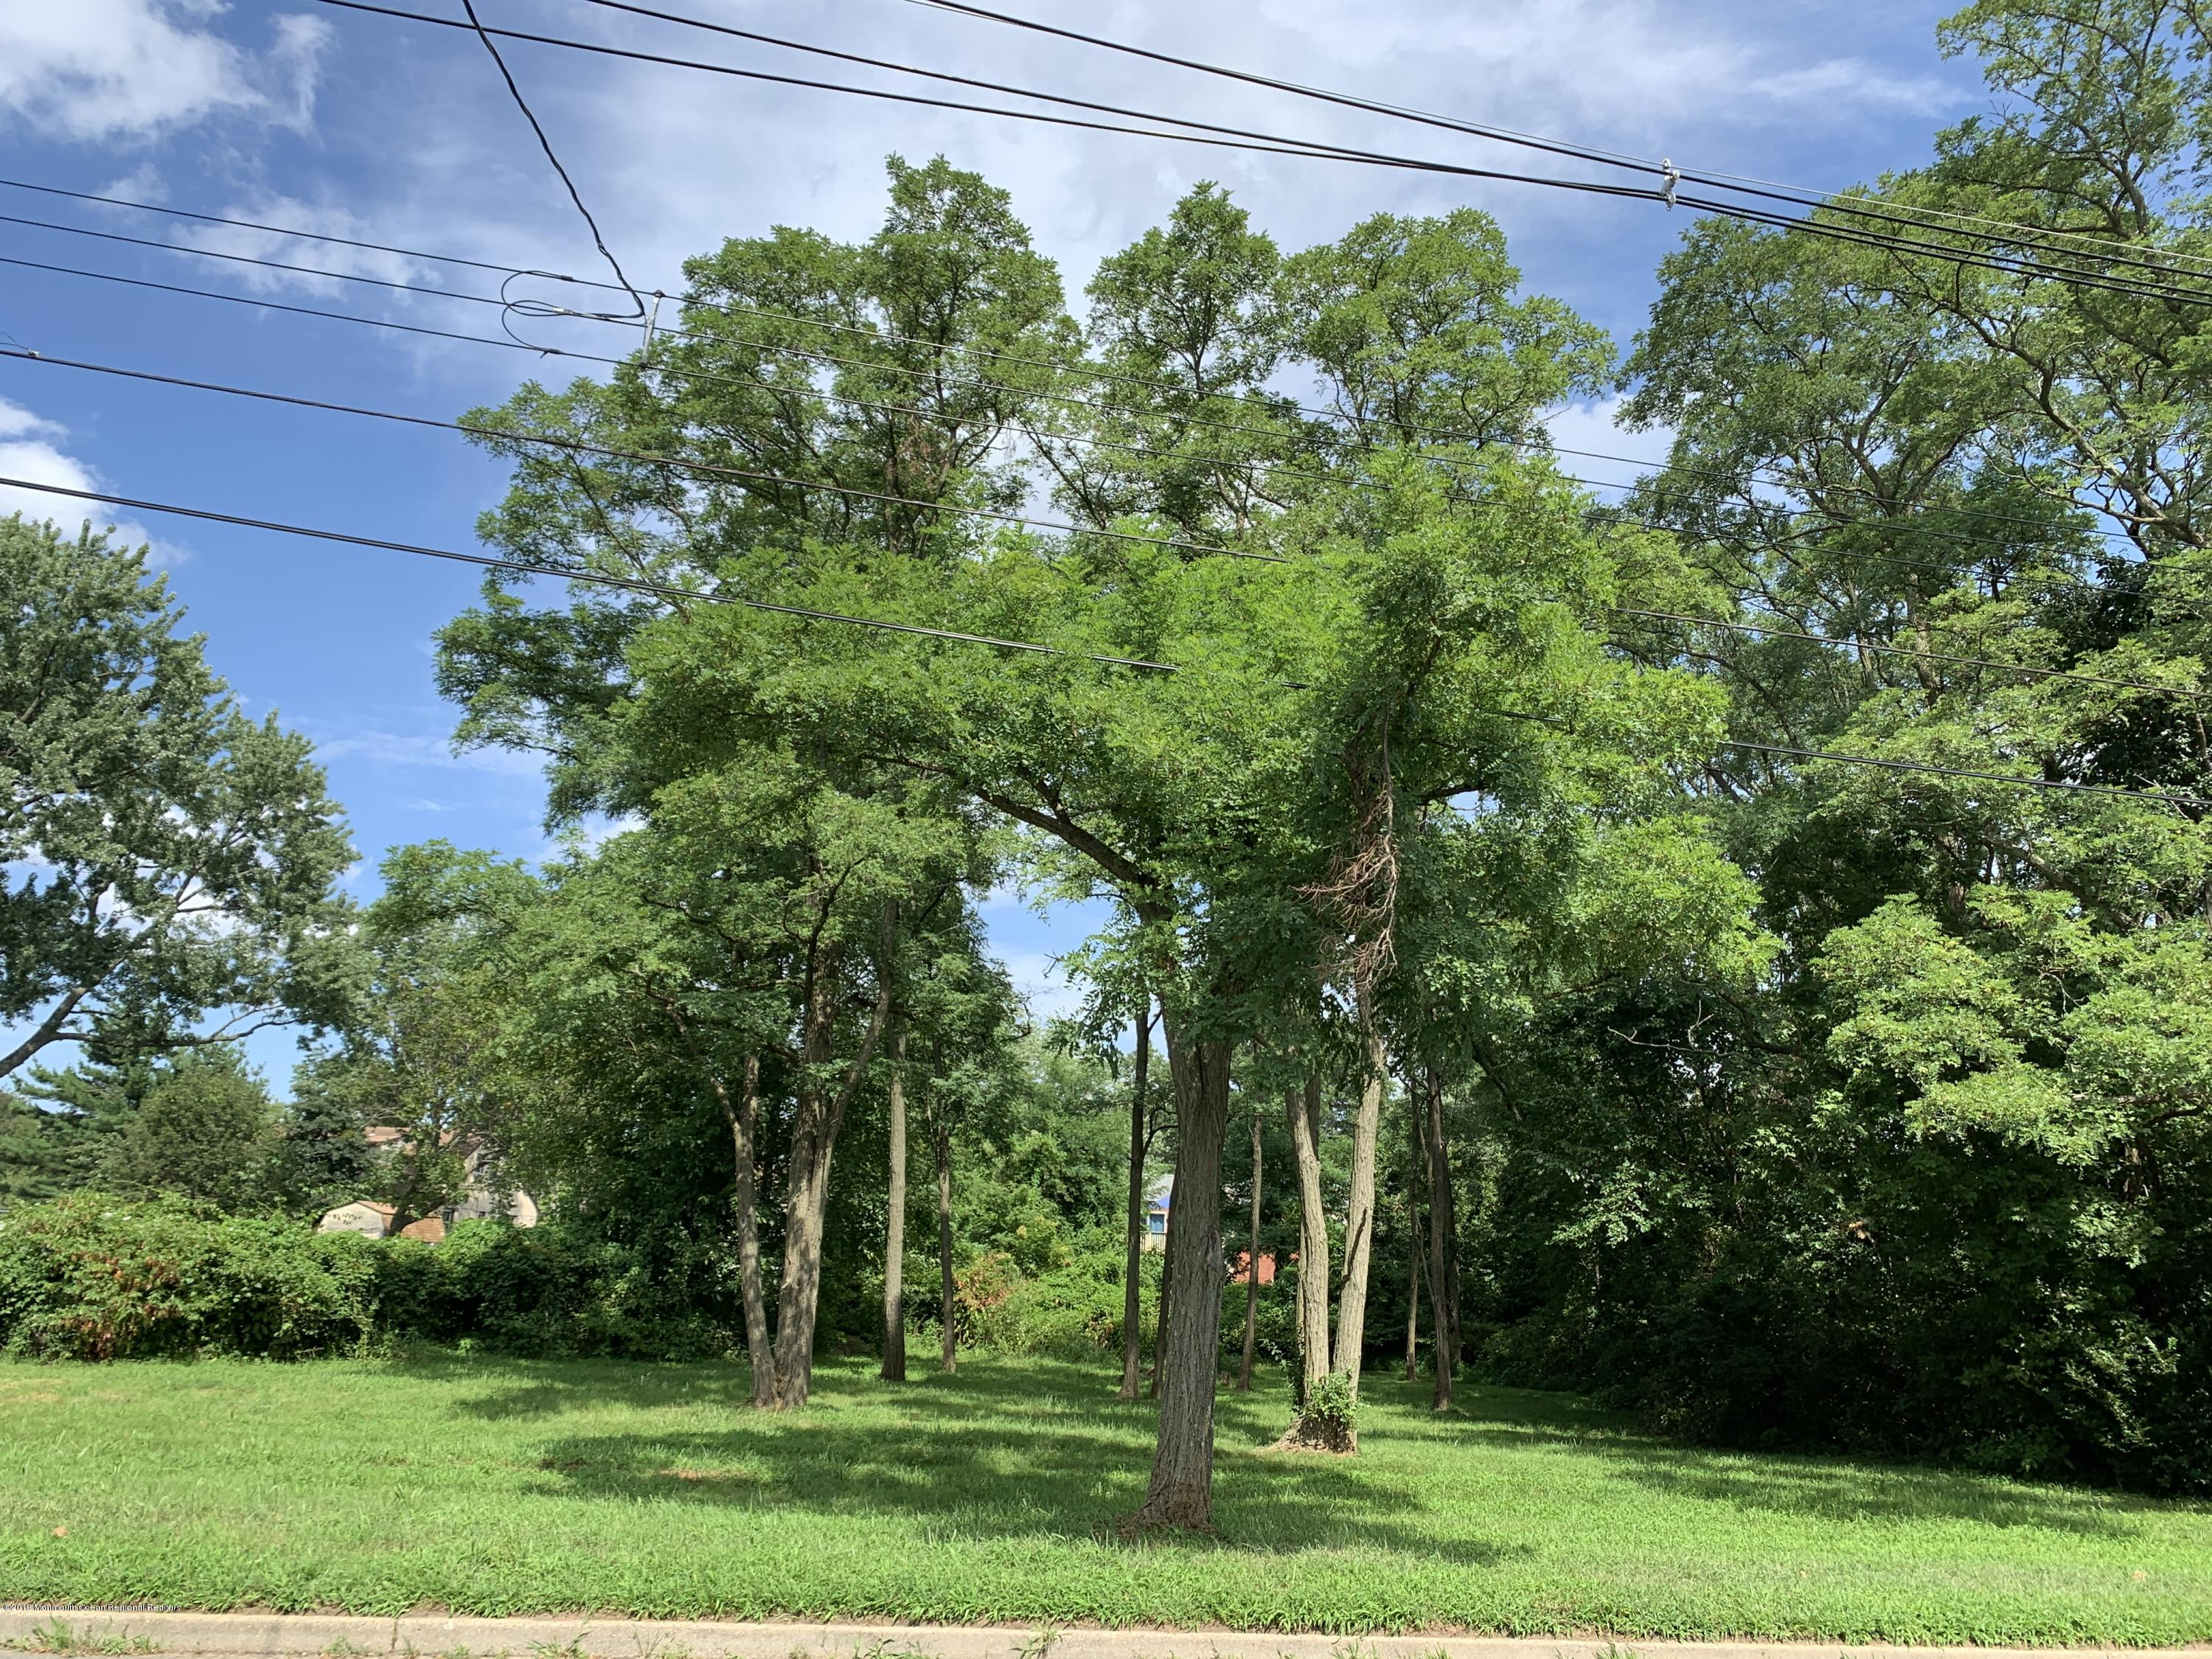 Great opportunity to build your own home or spec home.  Land is in AE flood zone.  AS IS.  Buyer responsible for all due diligence and approvals. No contingencies.